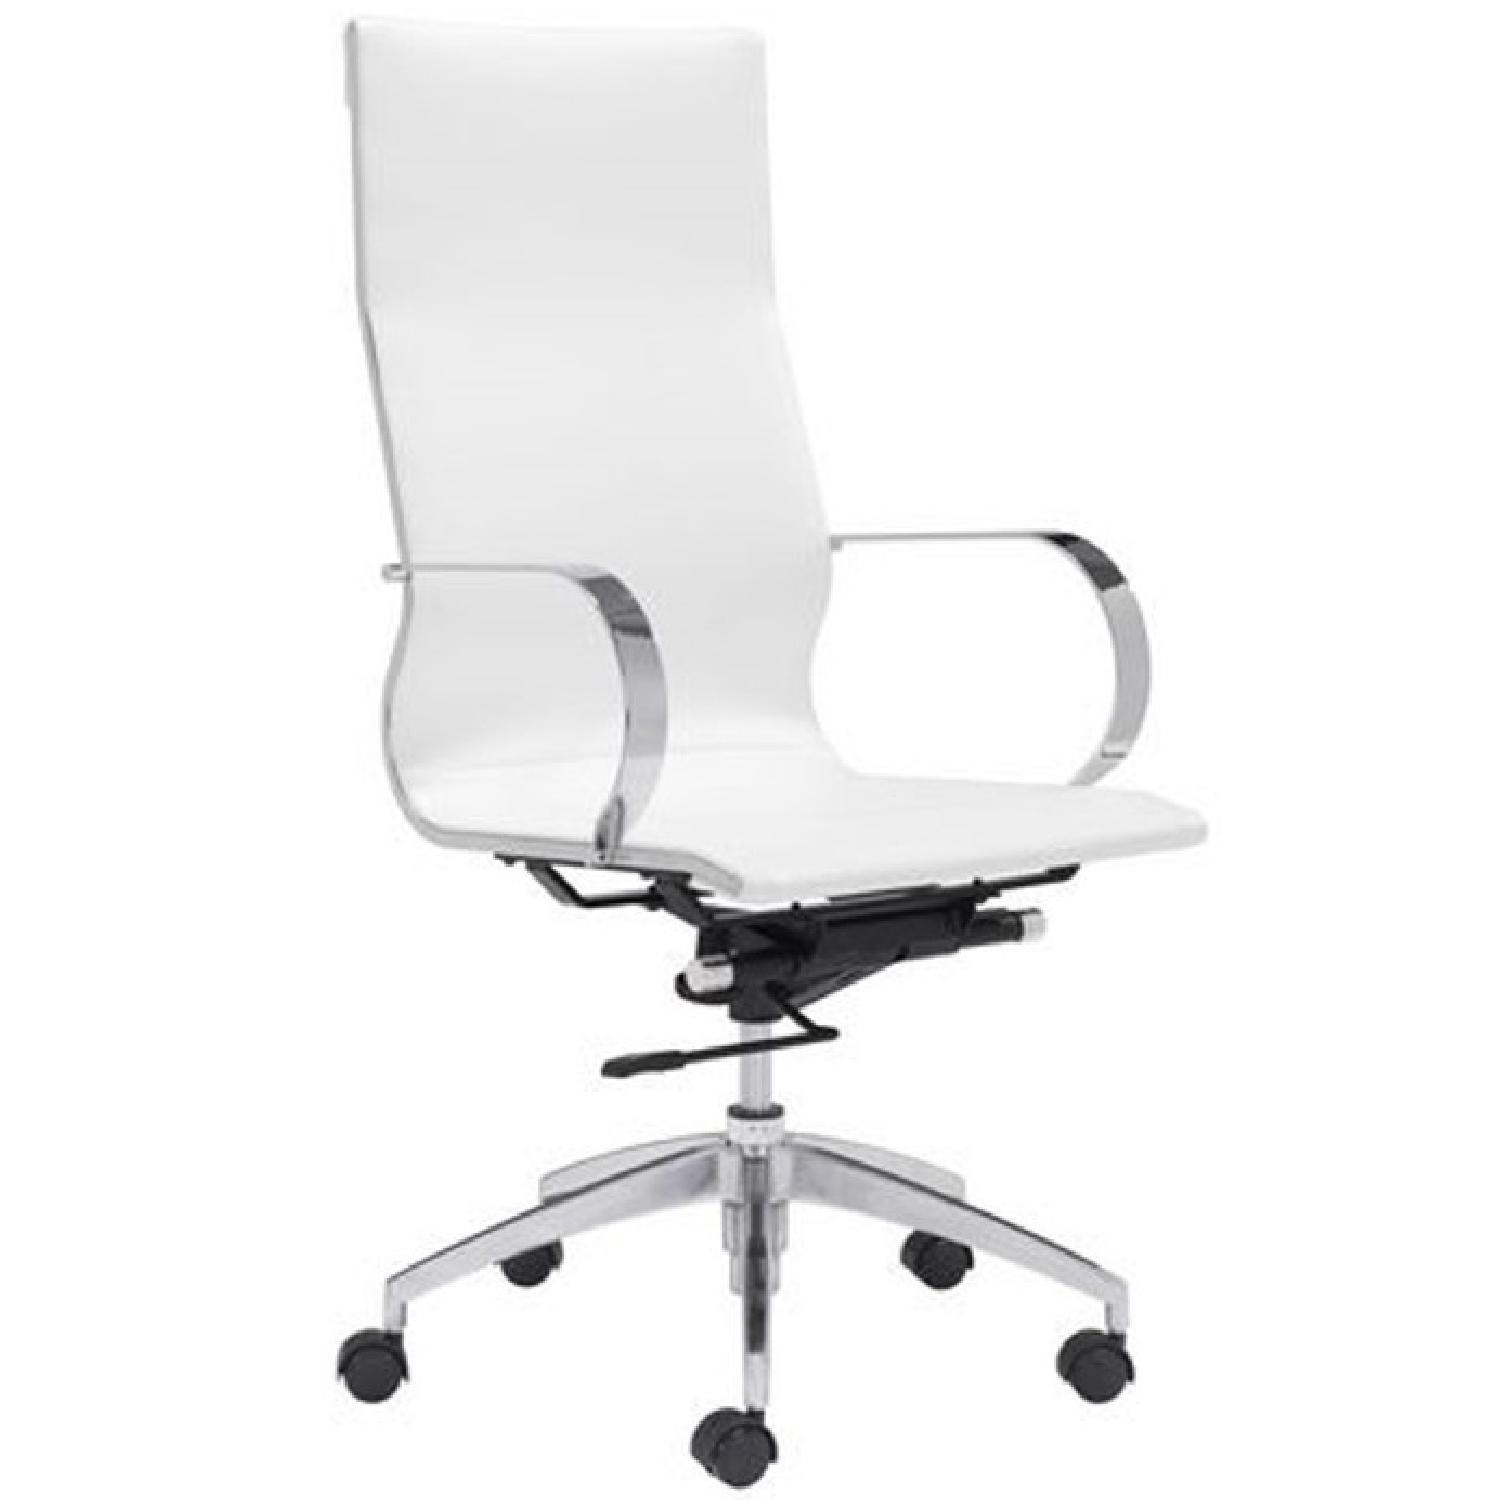 Modern High Back Office Chair in White Leatherette - image-0